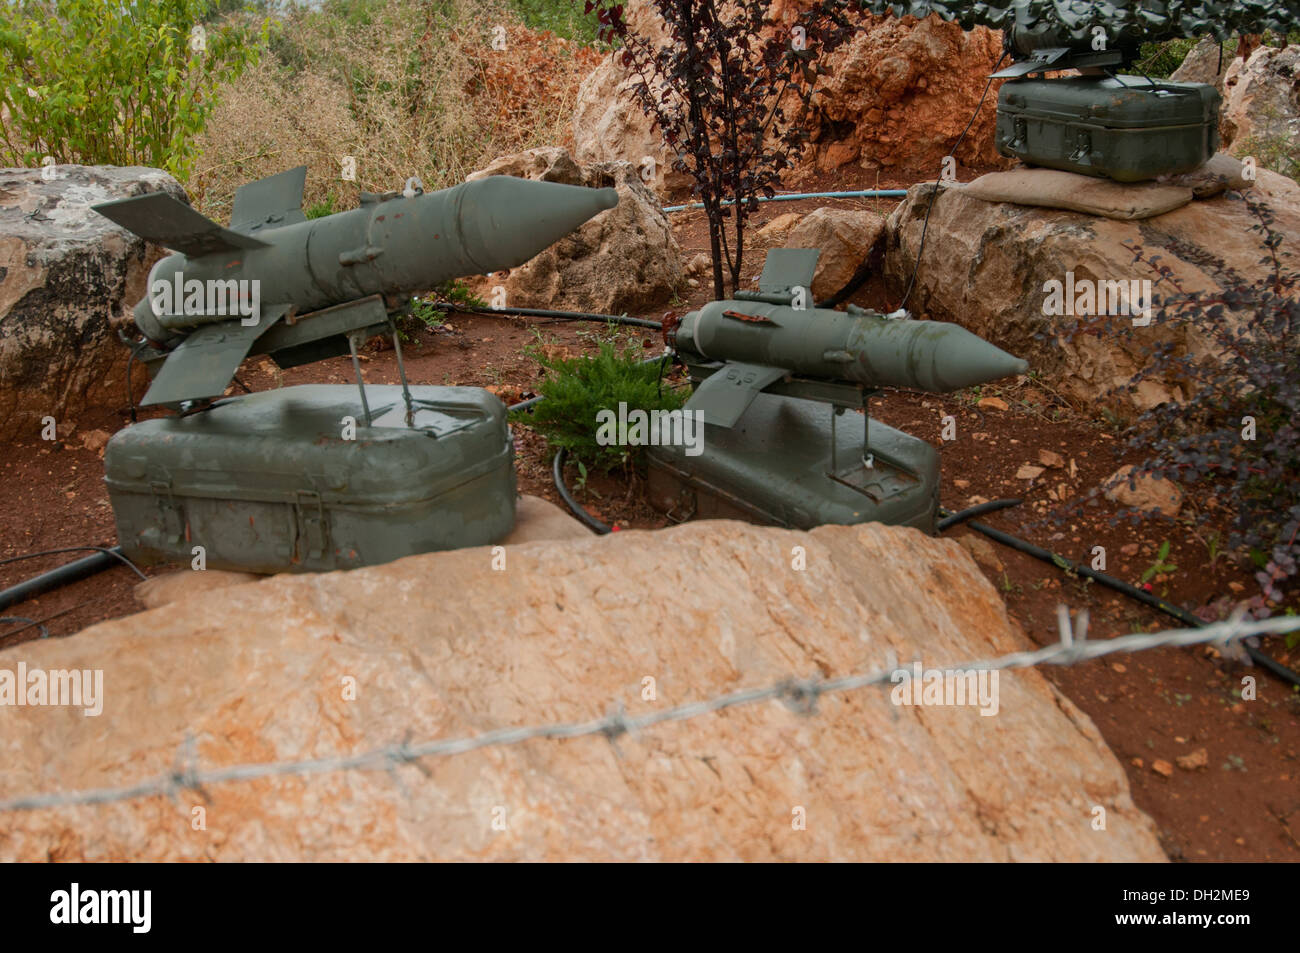 Anti Tank Guided Missile System Malyutka,  developed in the Soviet Union, Mleeta, Hezbollah Museum, South Lebanon - Stock Image